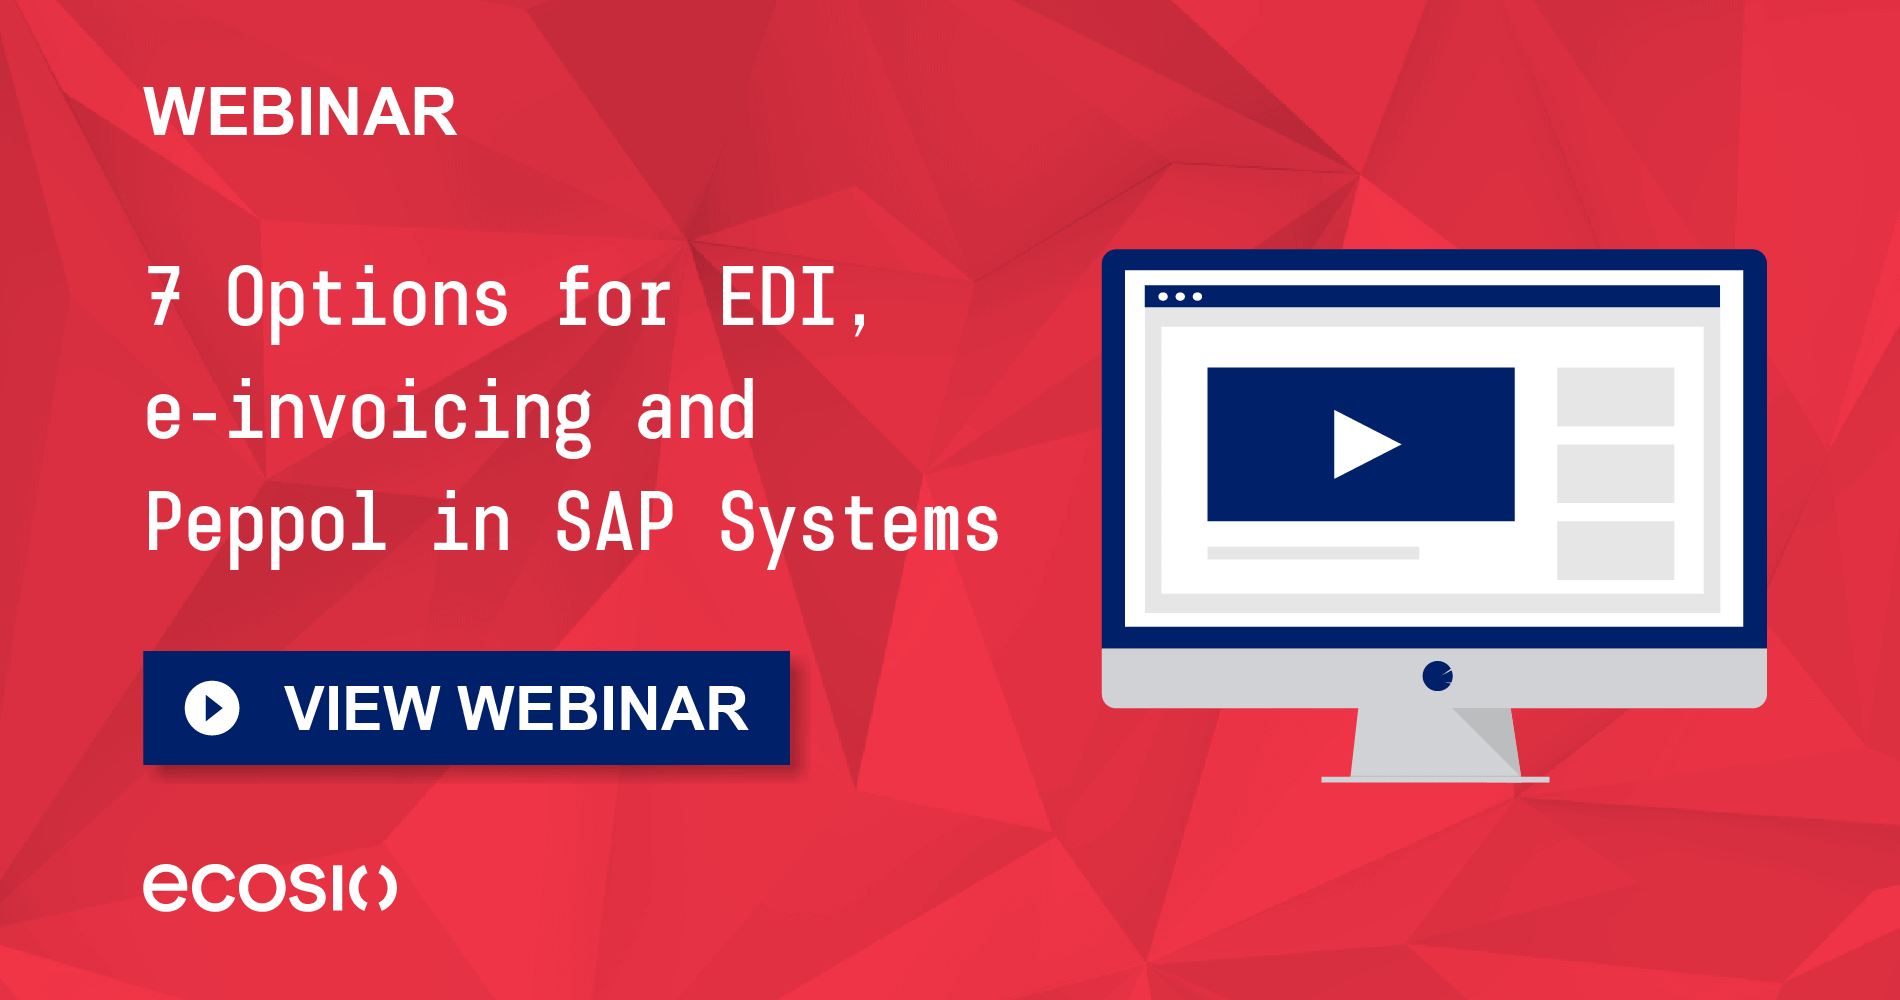 Webinar - 7 Options for EDI, e-invoicing and Peppol in SAP Systems